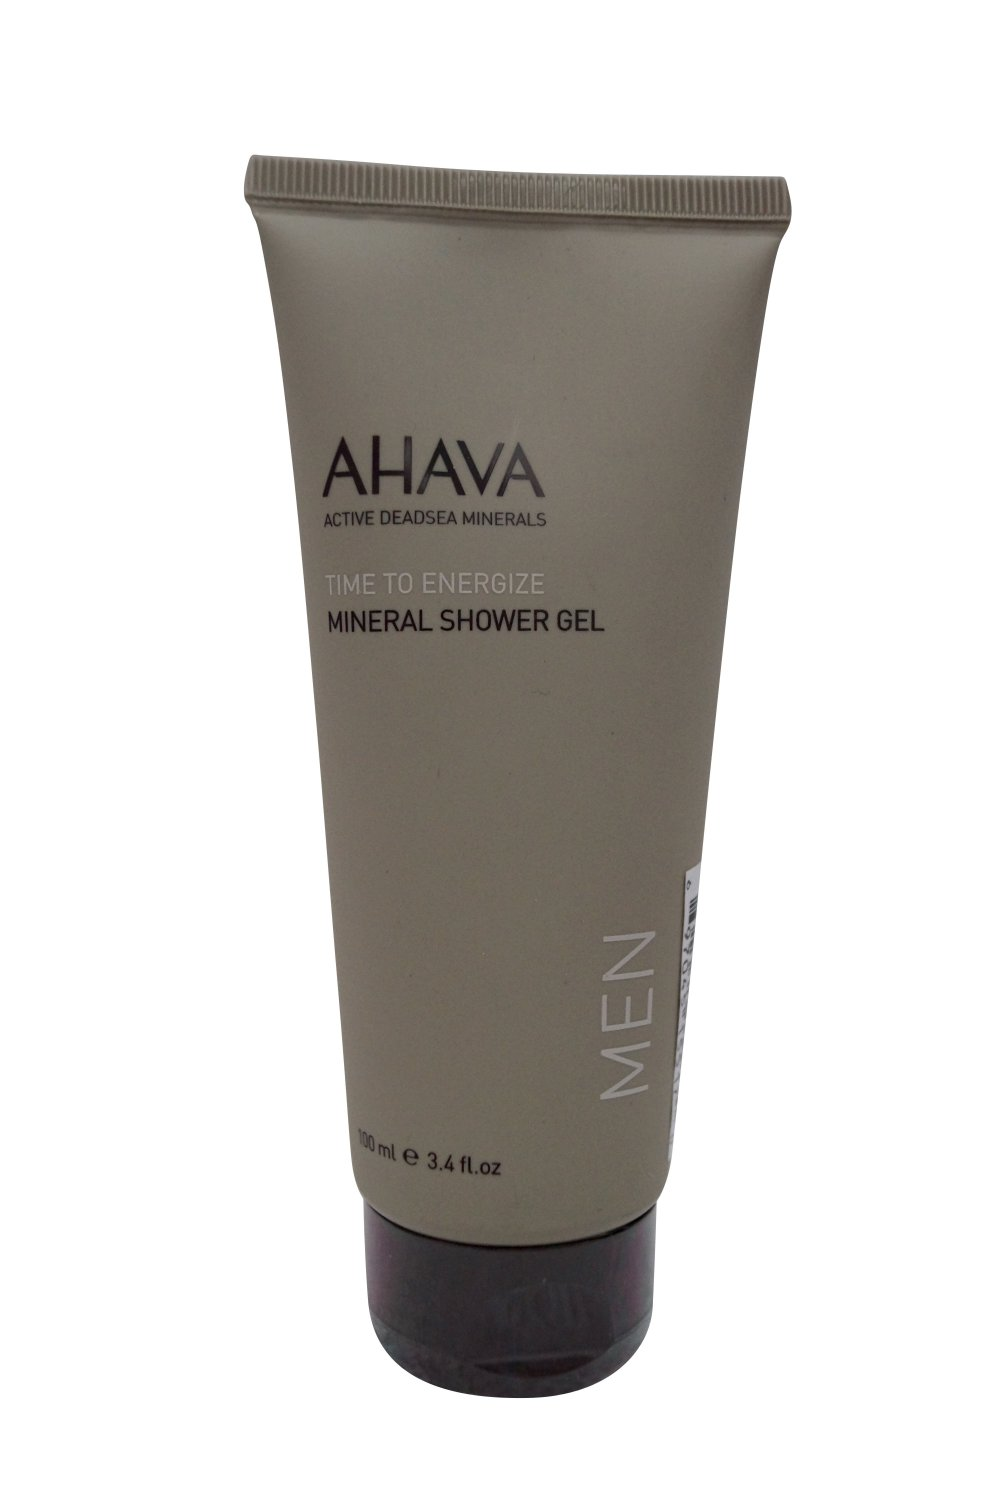 Ahava Mineral Shower Gel for Men, 3.4 oz.